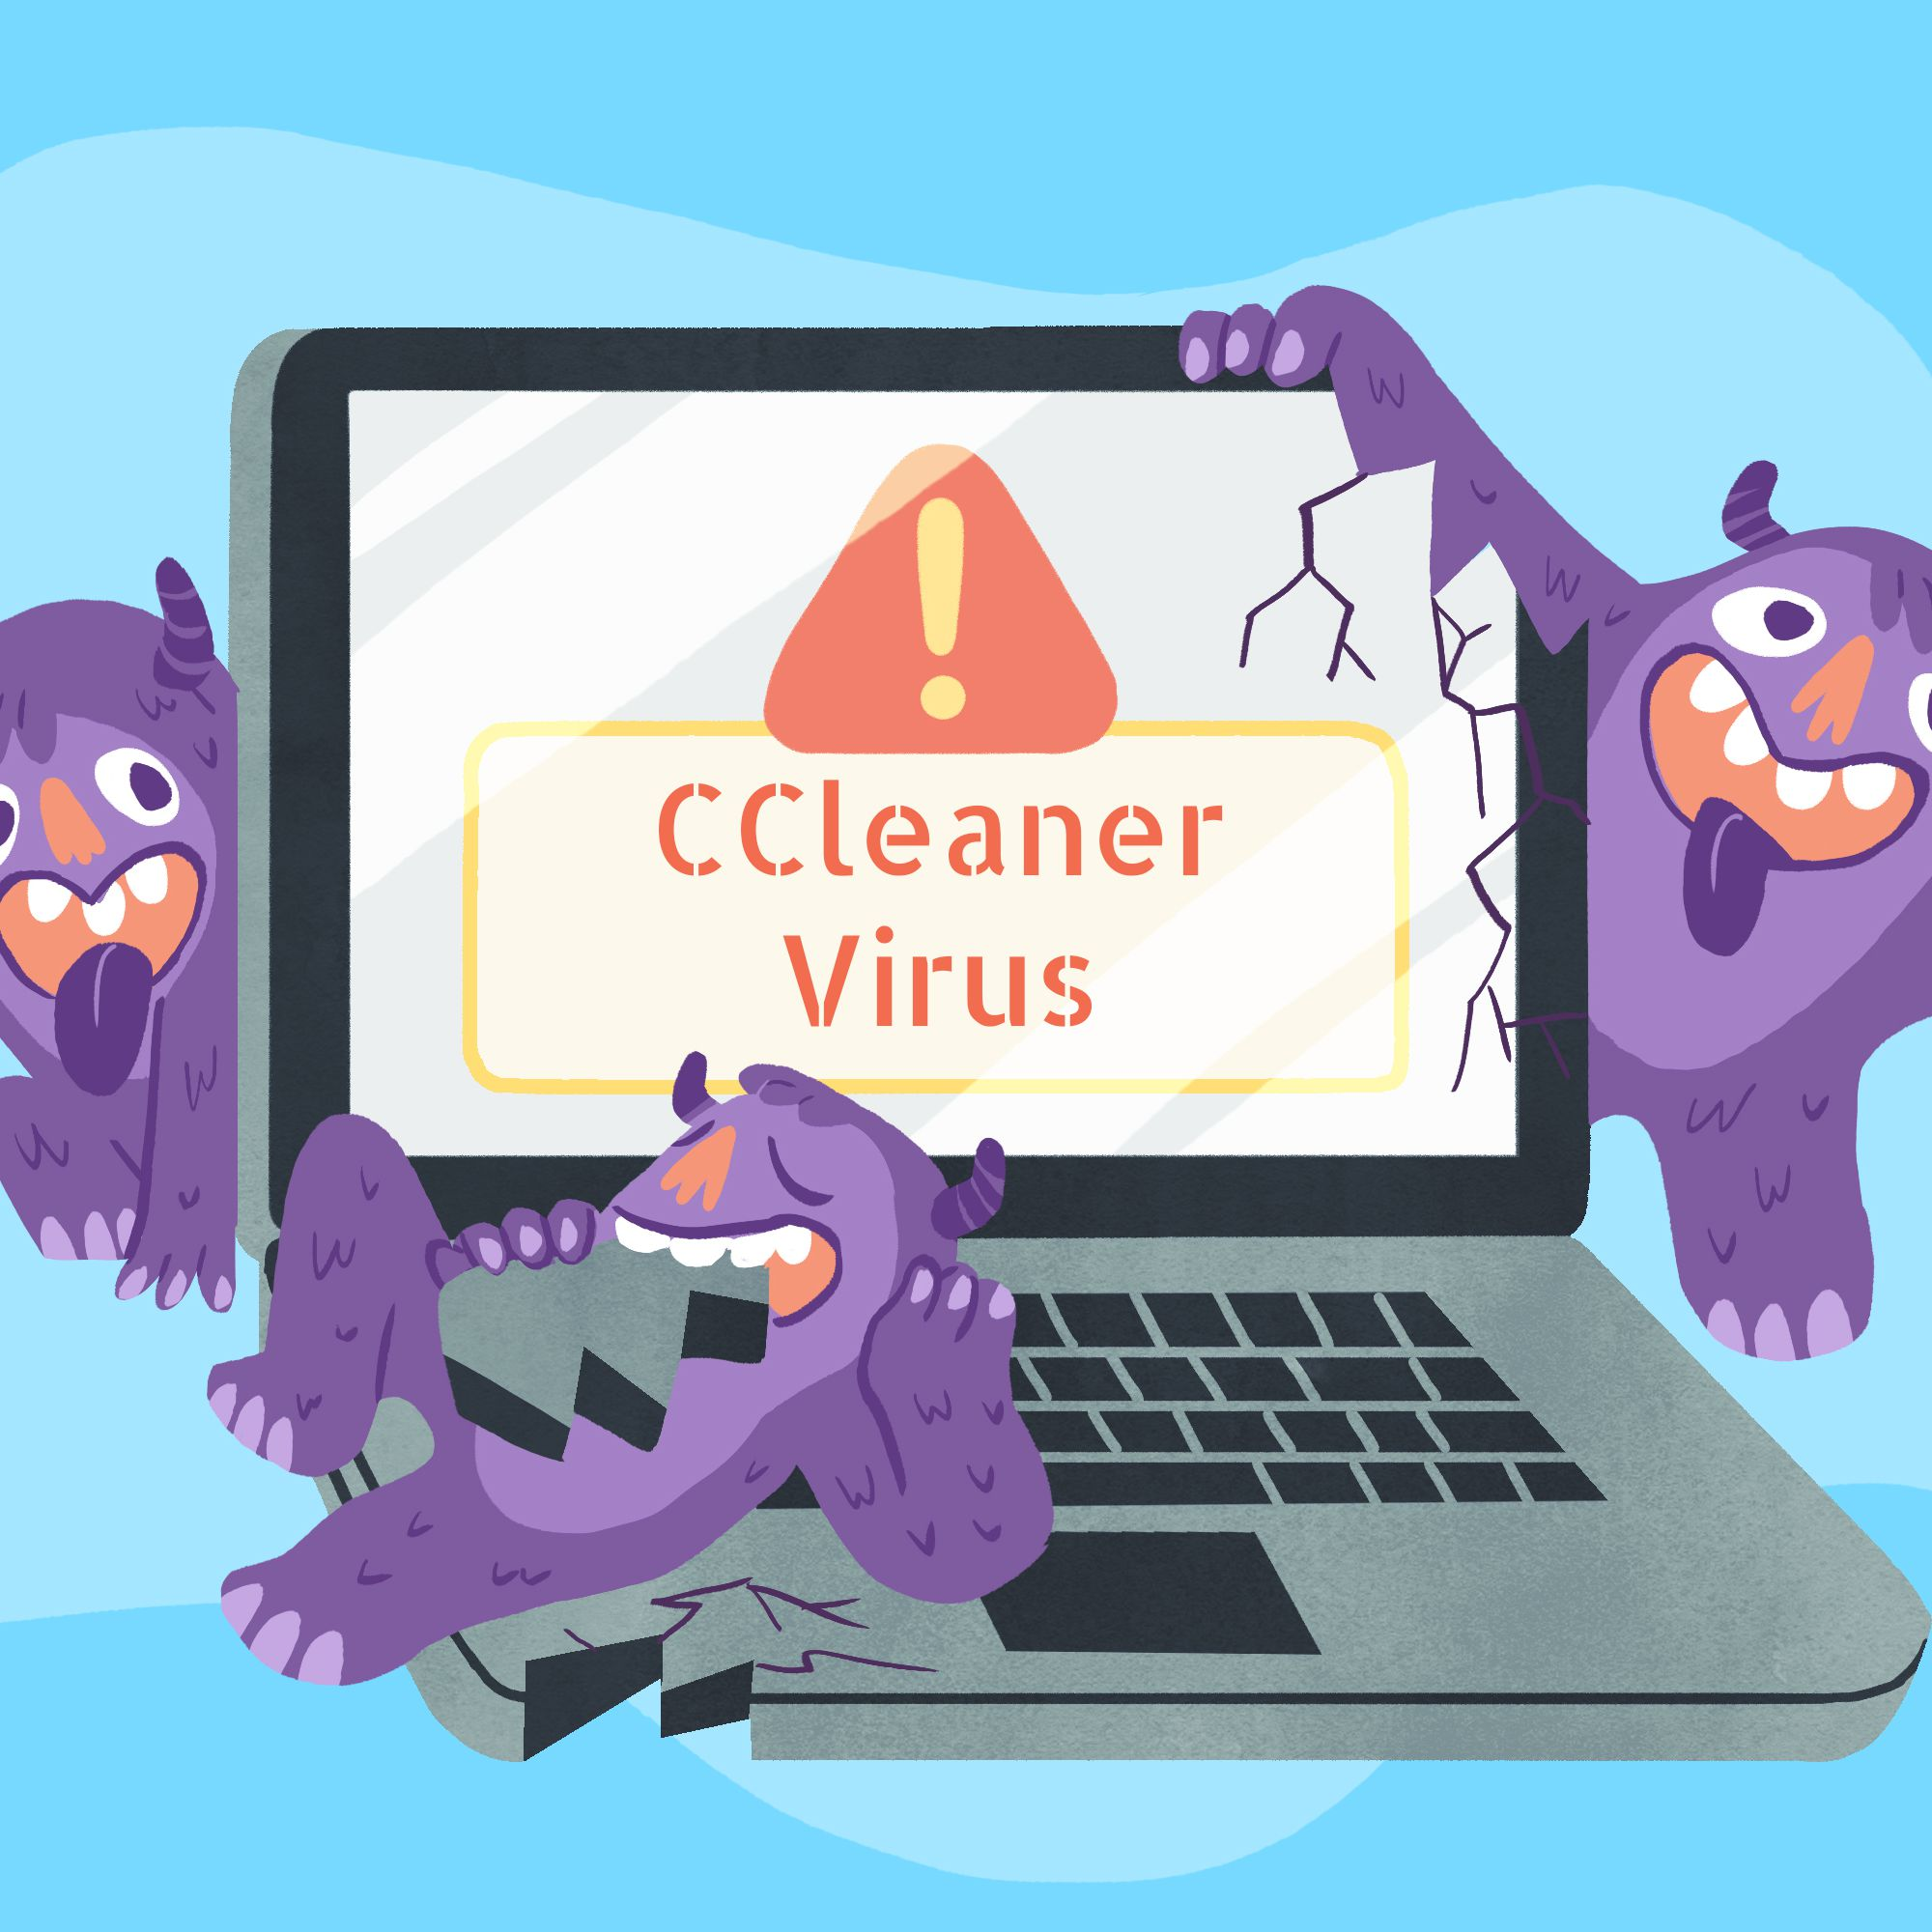 The CCleaner Virus: What It Is and How to Remove It